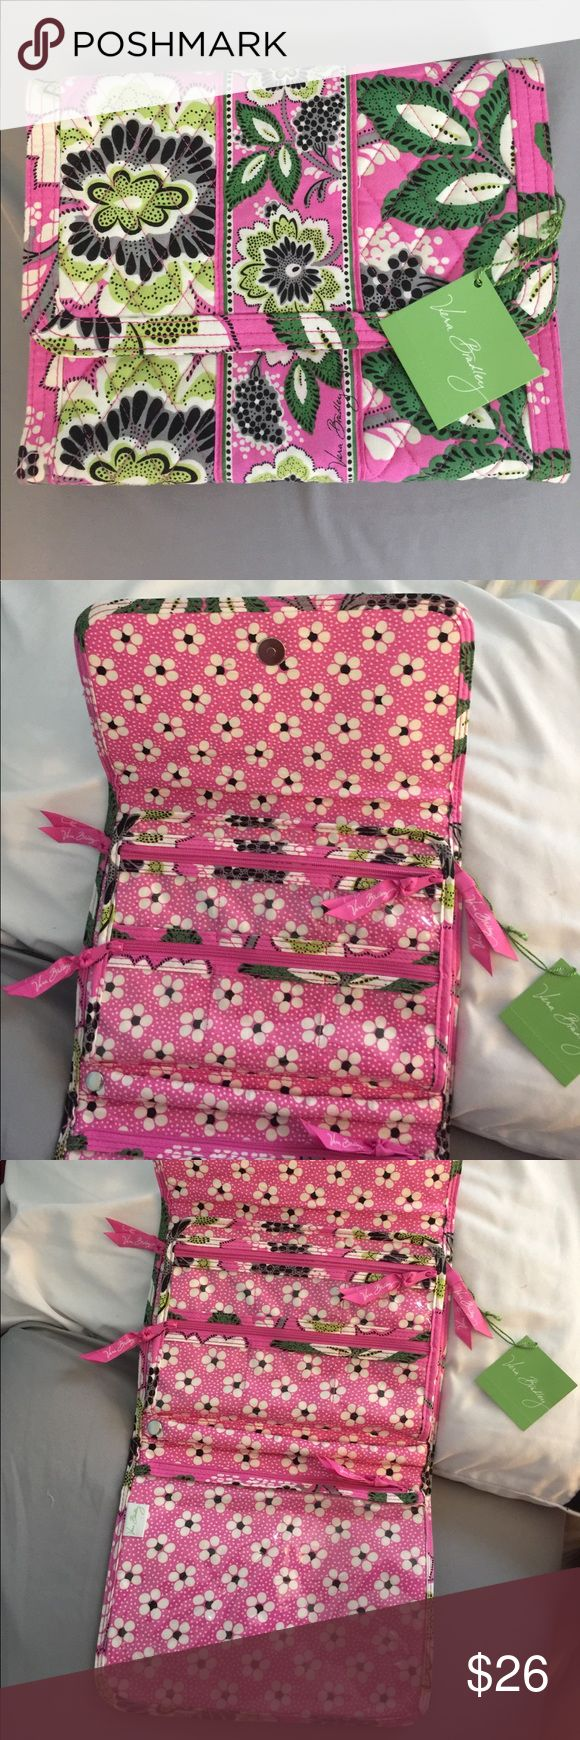 Vera Bradley Travel Bag Brand new travel bag! Pretty pink bag that allows you to travel organized and in style! It may be hard to tell in the pictures but there is a middle section that can be flapped back and forth. 11 different compartments! Vera Bradley Bags Travel Bags